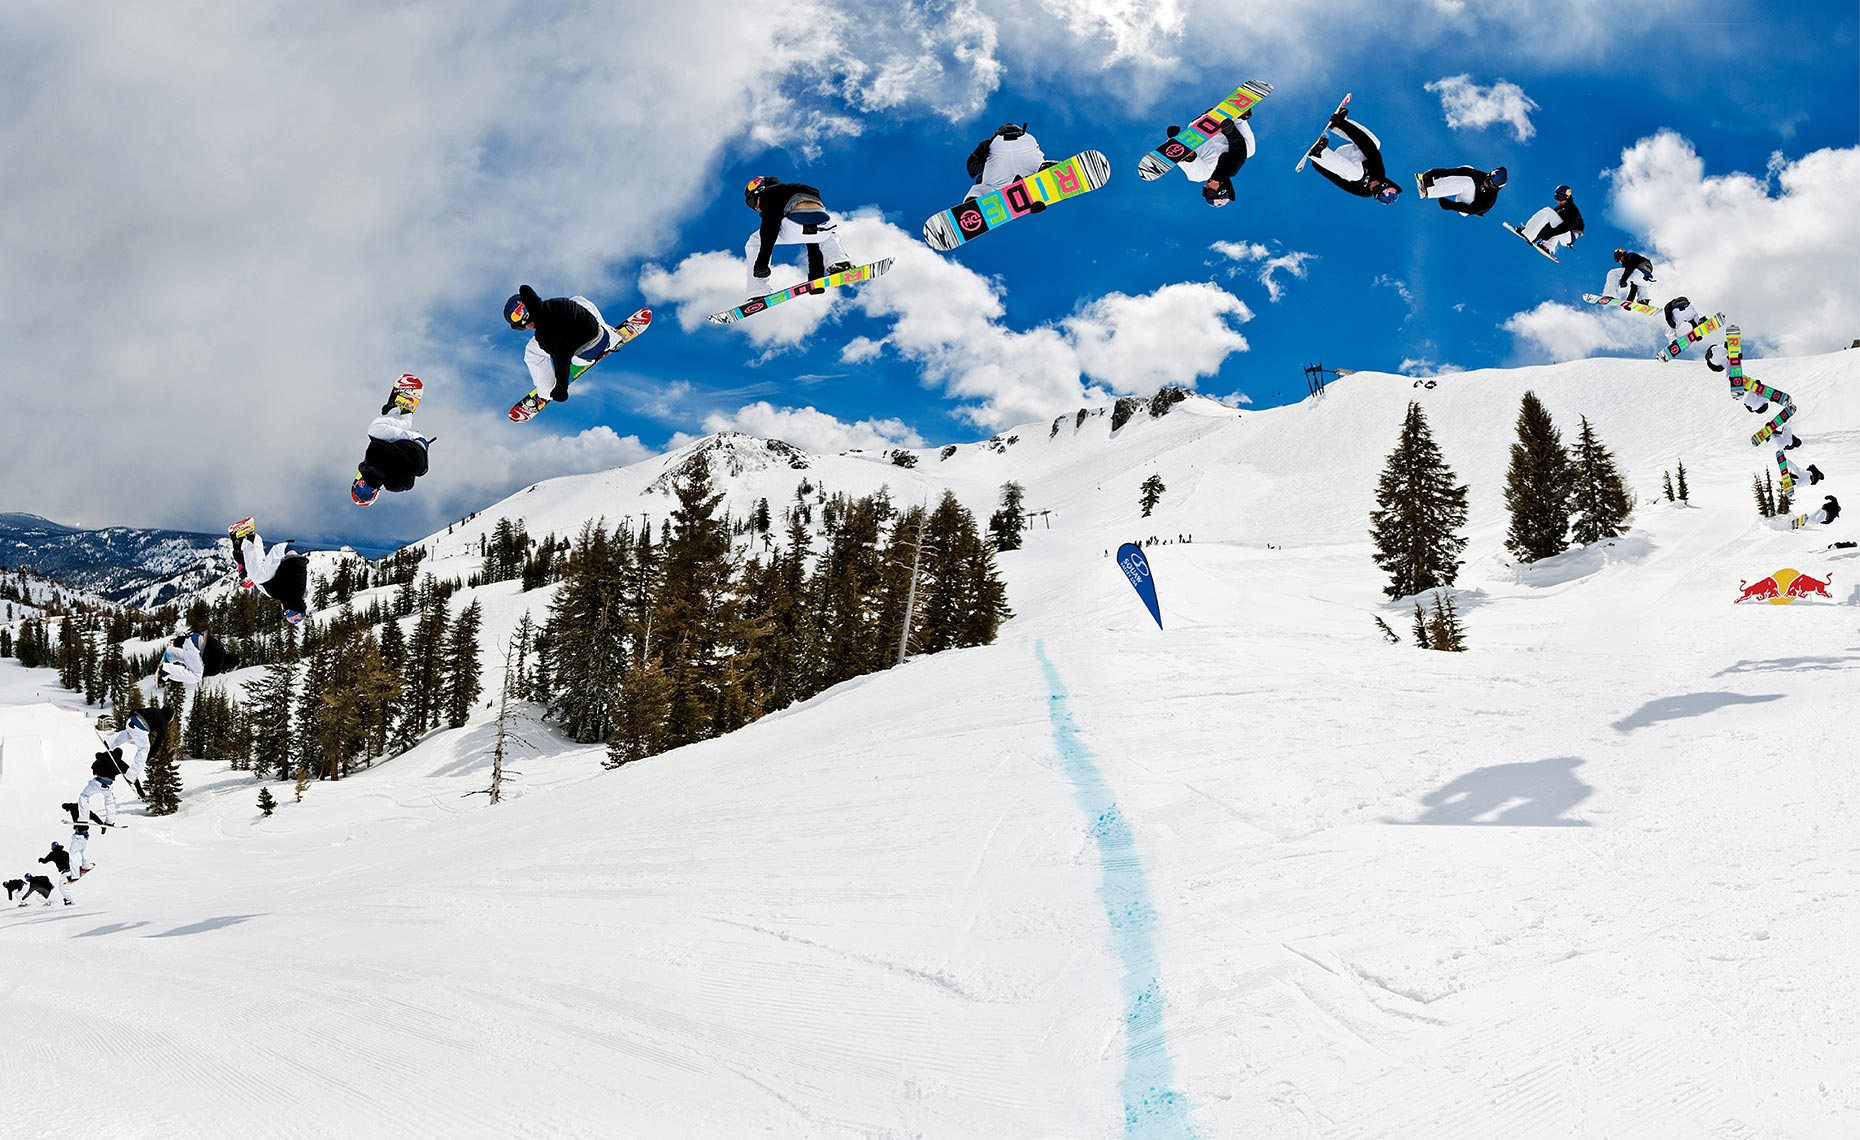 04_Seb_Toots_Triple_Cork_Squaw_Valley_California_Red_Bull_Snowboarding_Chris_Wellhausen_Photography.JPG